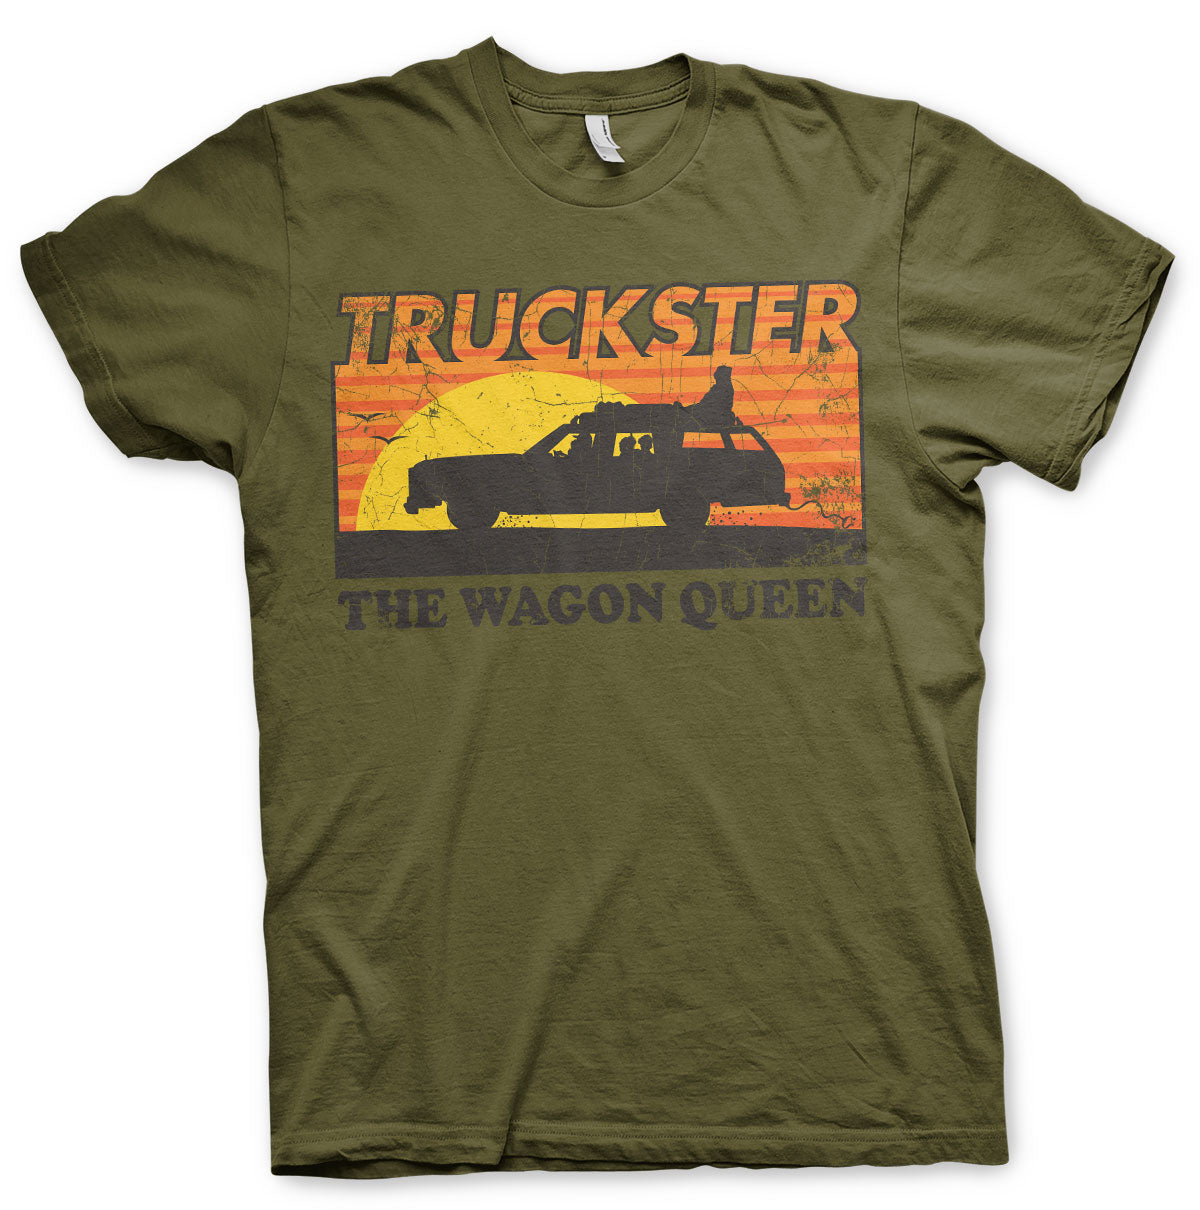 National Lampoon's Truckster The Wagon Queen T-Shirt Khaki - Amhero